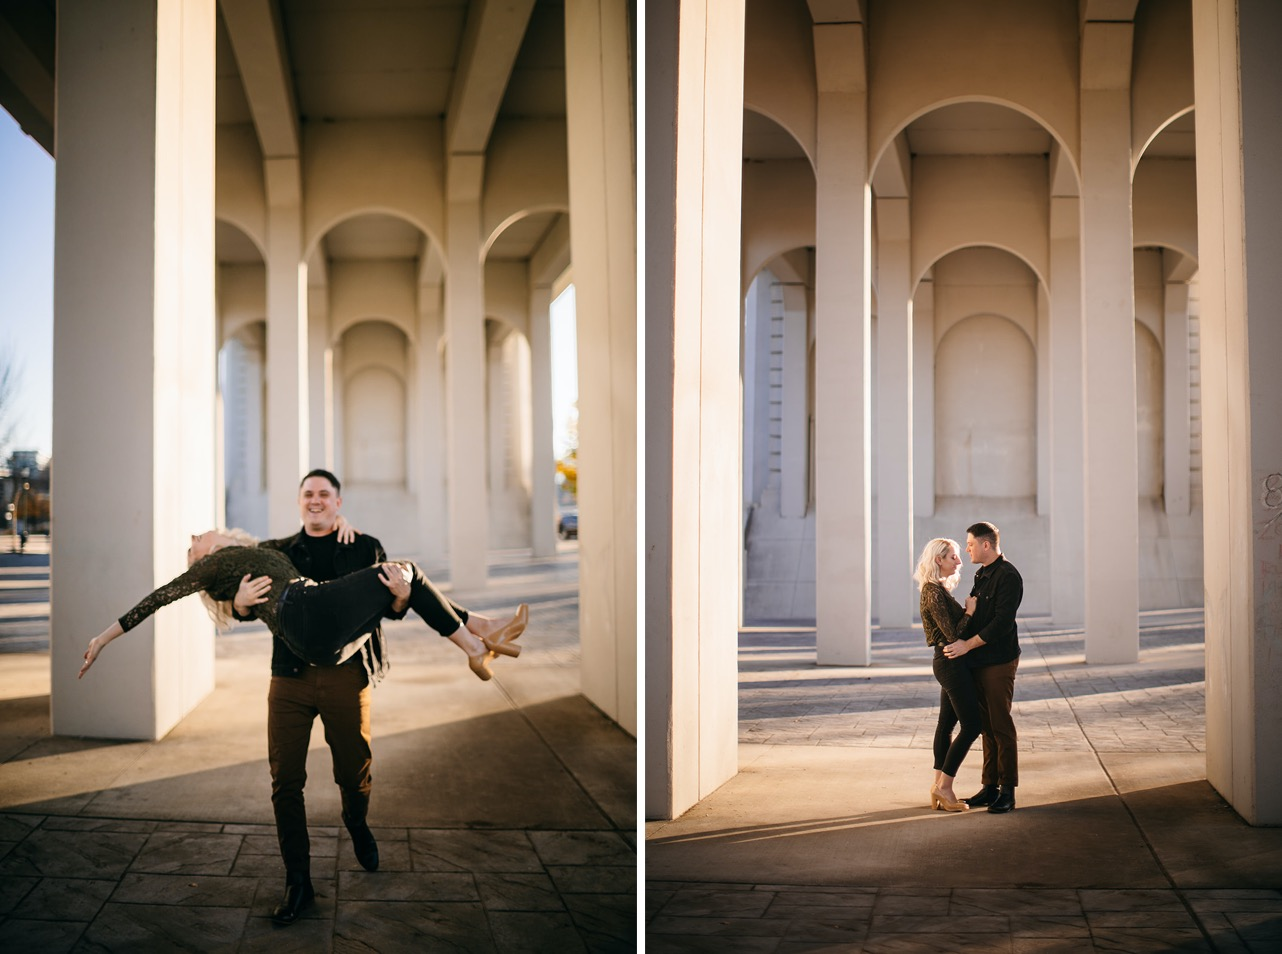 A man and woman embrace facing one another under the Market Street Bridge.